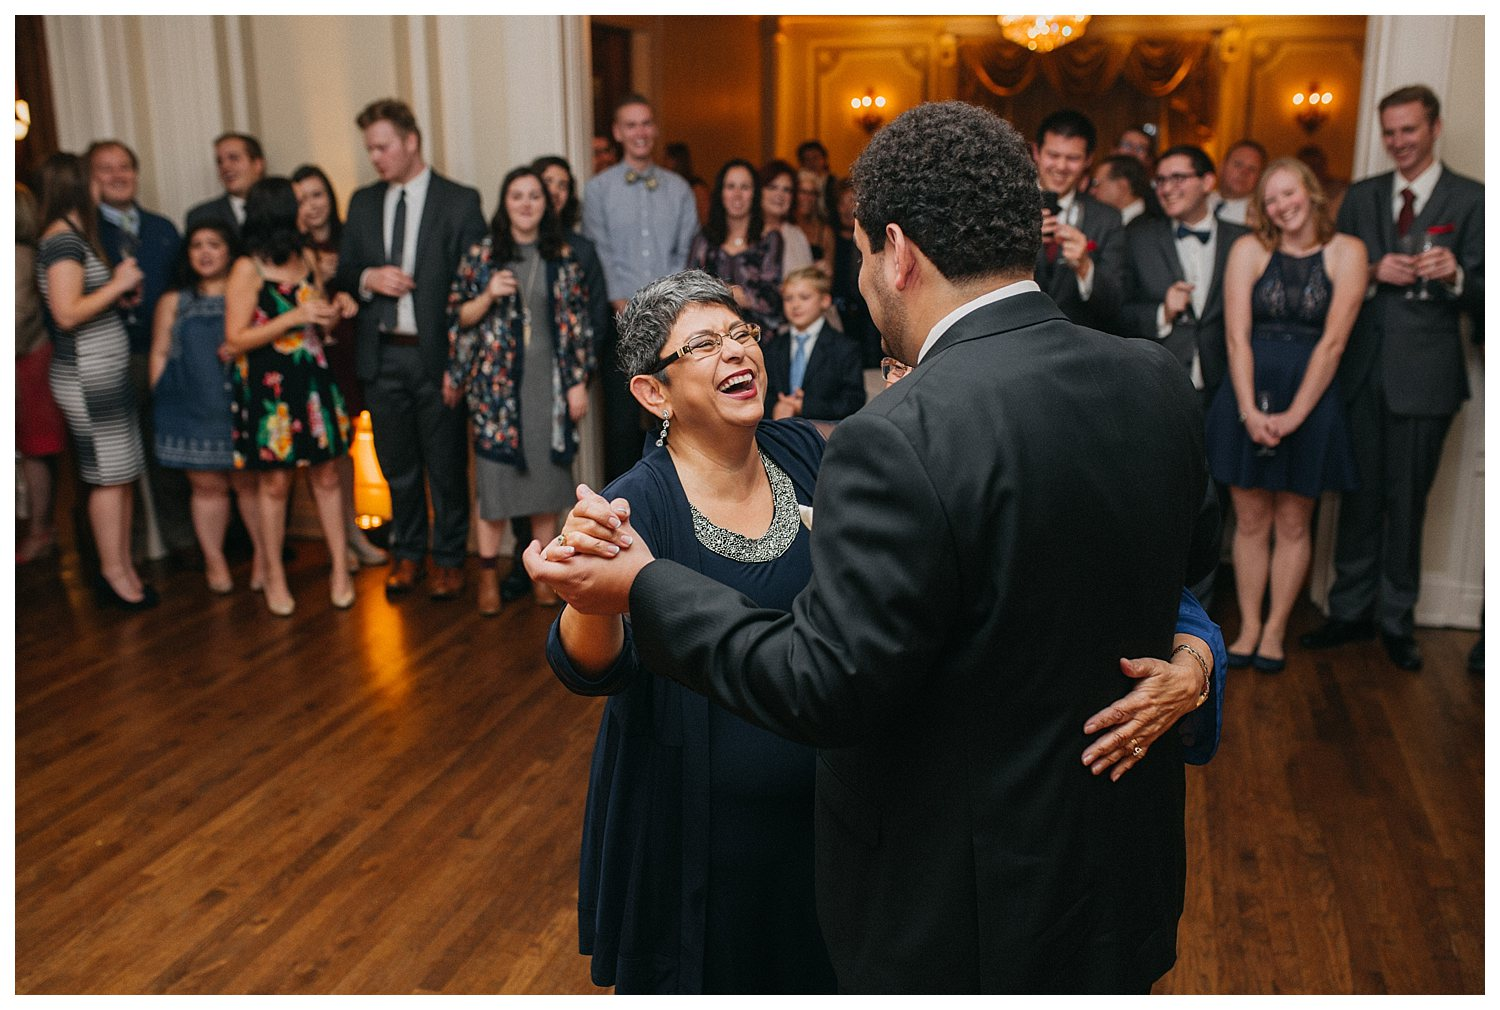 Kelsey_Diane_Photography_Loose_Mansion_Wedding_Photography_Kansas_City_Victor_Lyndsay_0170.jpg